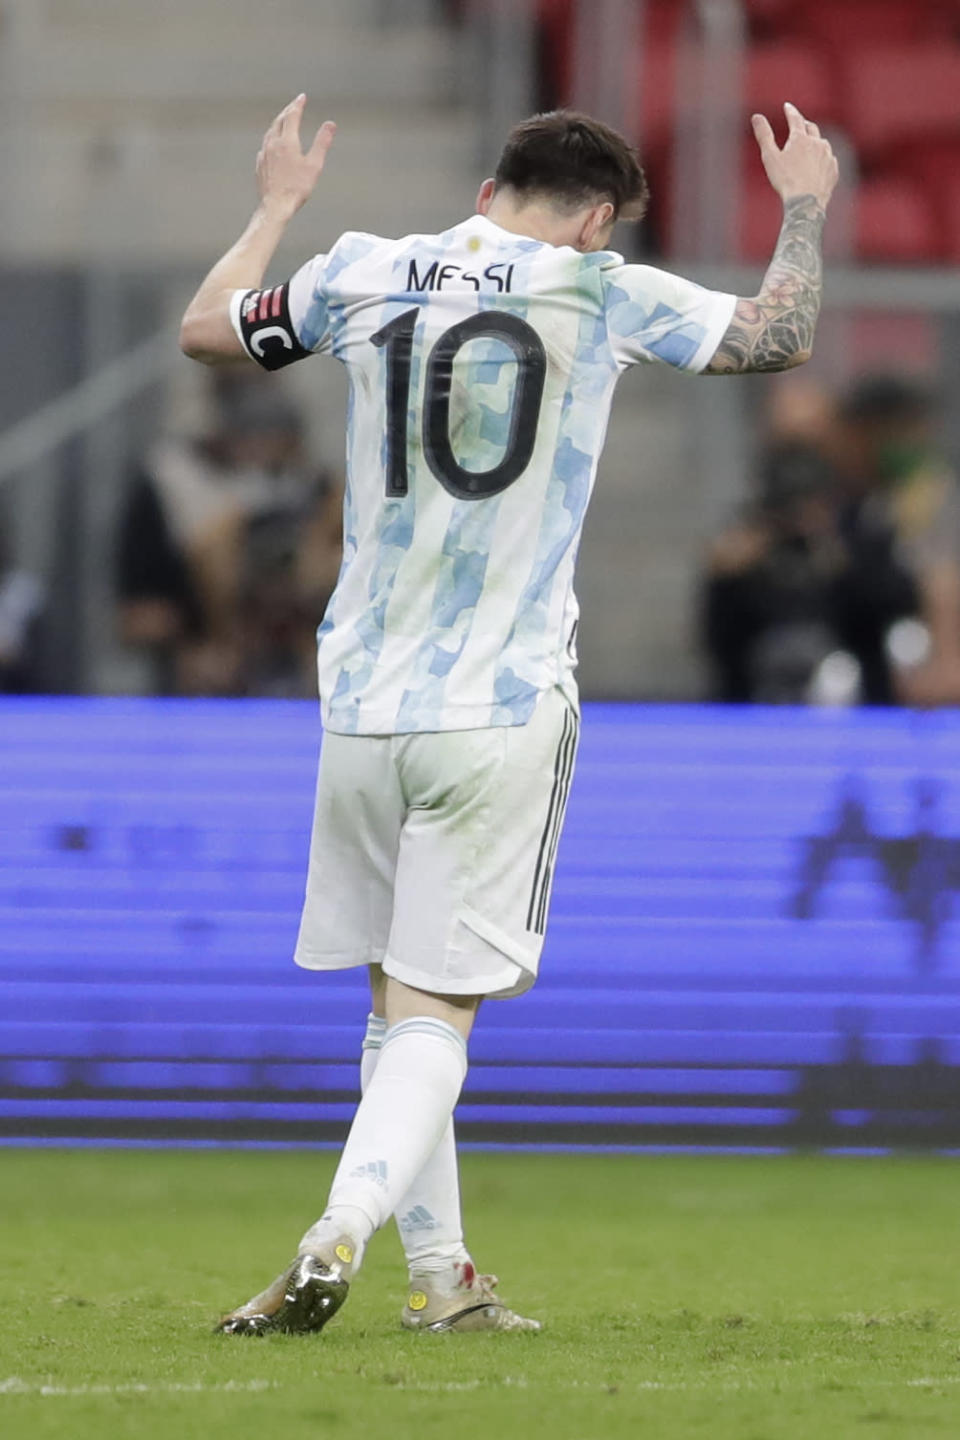 Blood is seen in an ankle of Argentina's Lionel Messi as he reacts during a Copa America semifinal soccer match against Colombia at the National stadium in Brasilia, Brazil, Tuesday, July 6, 2021. (AP Photo/Eraldo Peres)